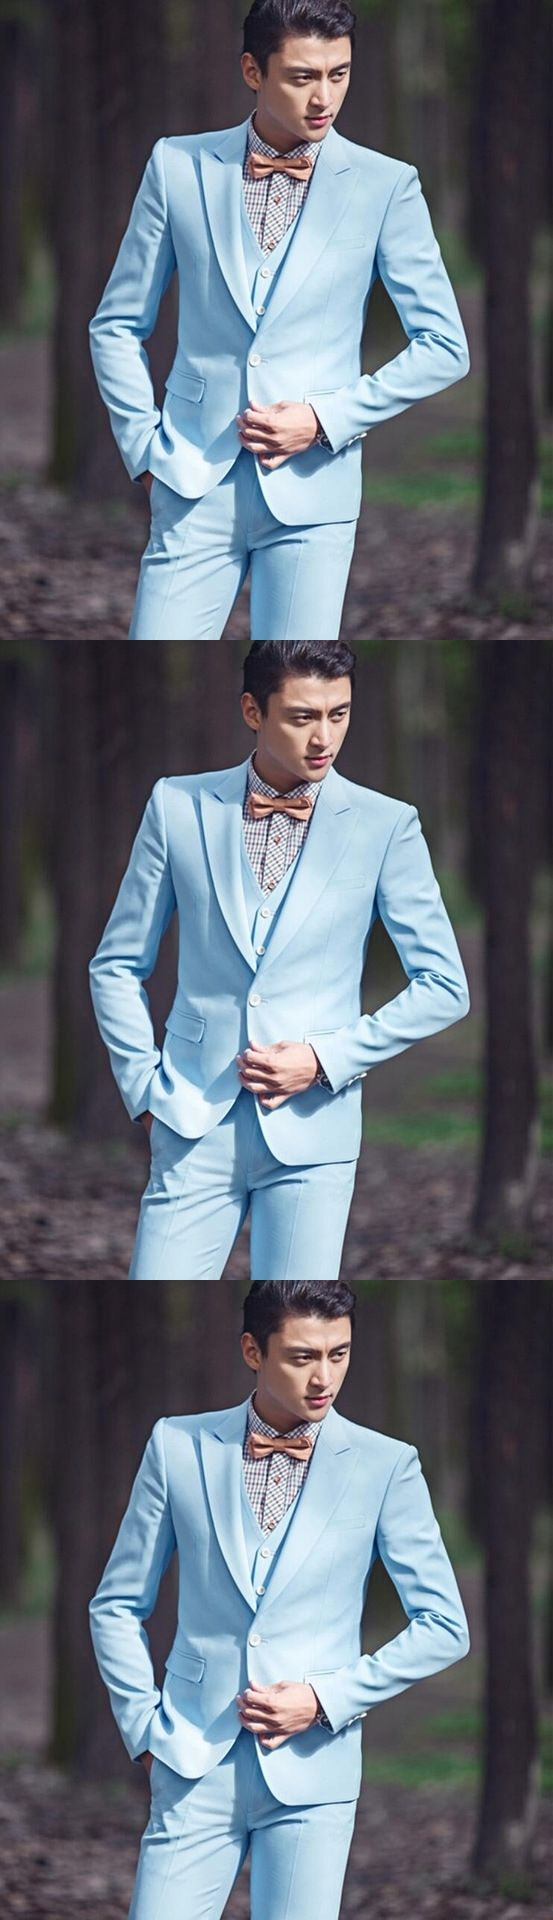 Classic Style One Button Sky Blue Groom Tuxedos Groomsmen Men's Wedding Prom Suits Bridegroom (Jacket+Pants+Vest+Tie)